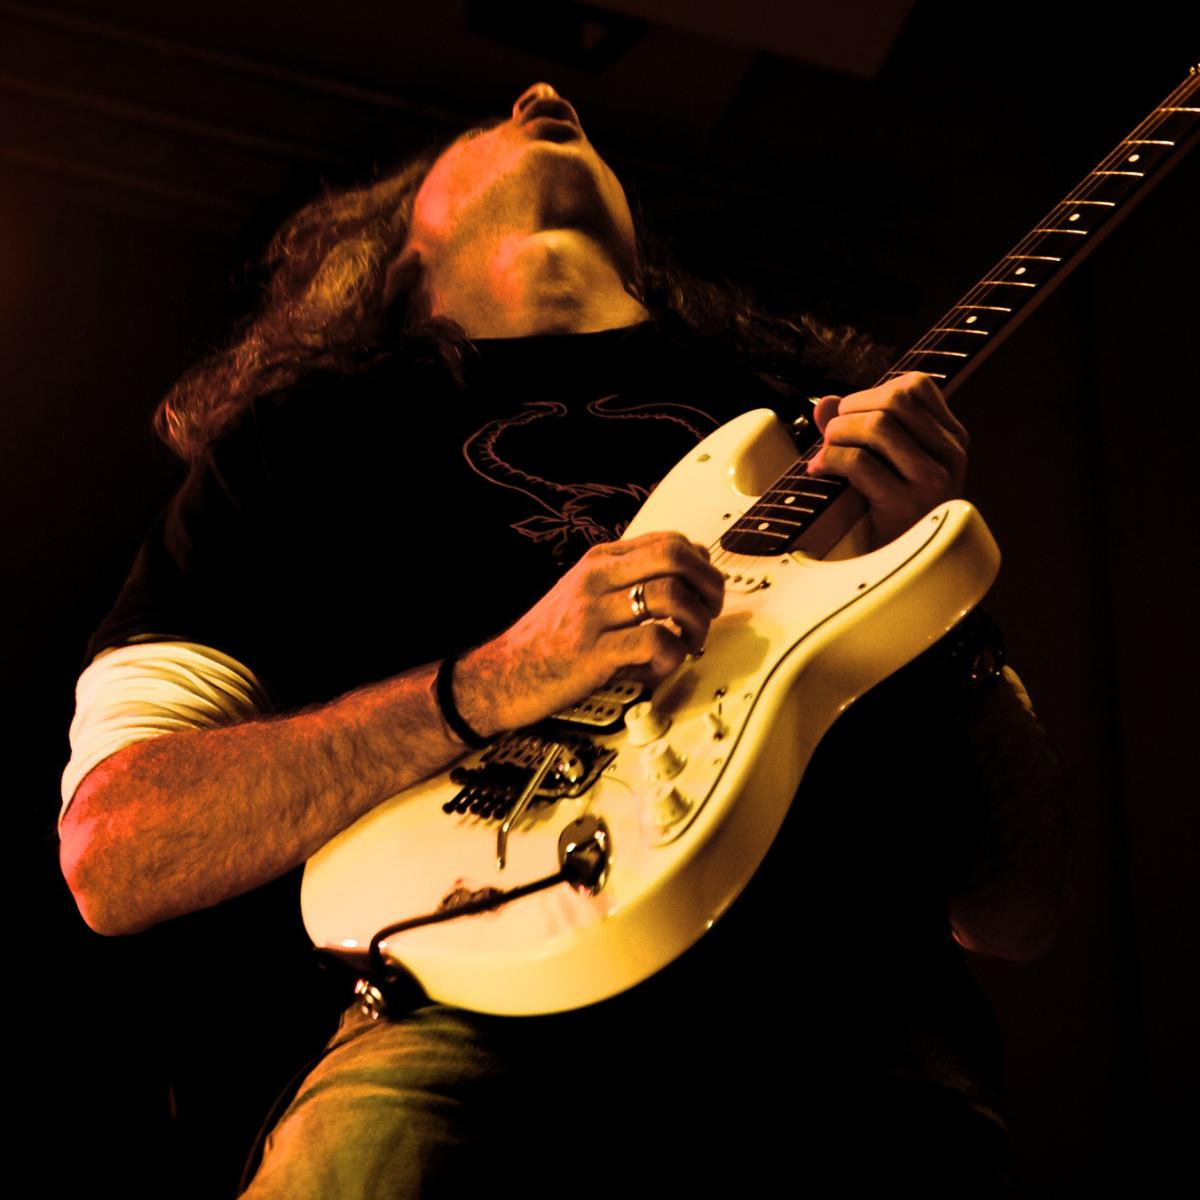 Passion on Guitar